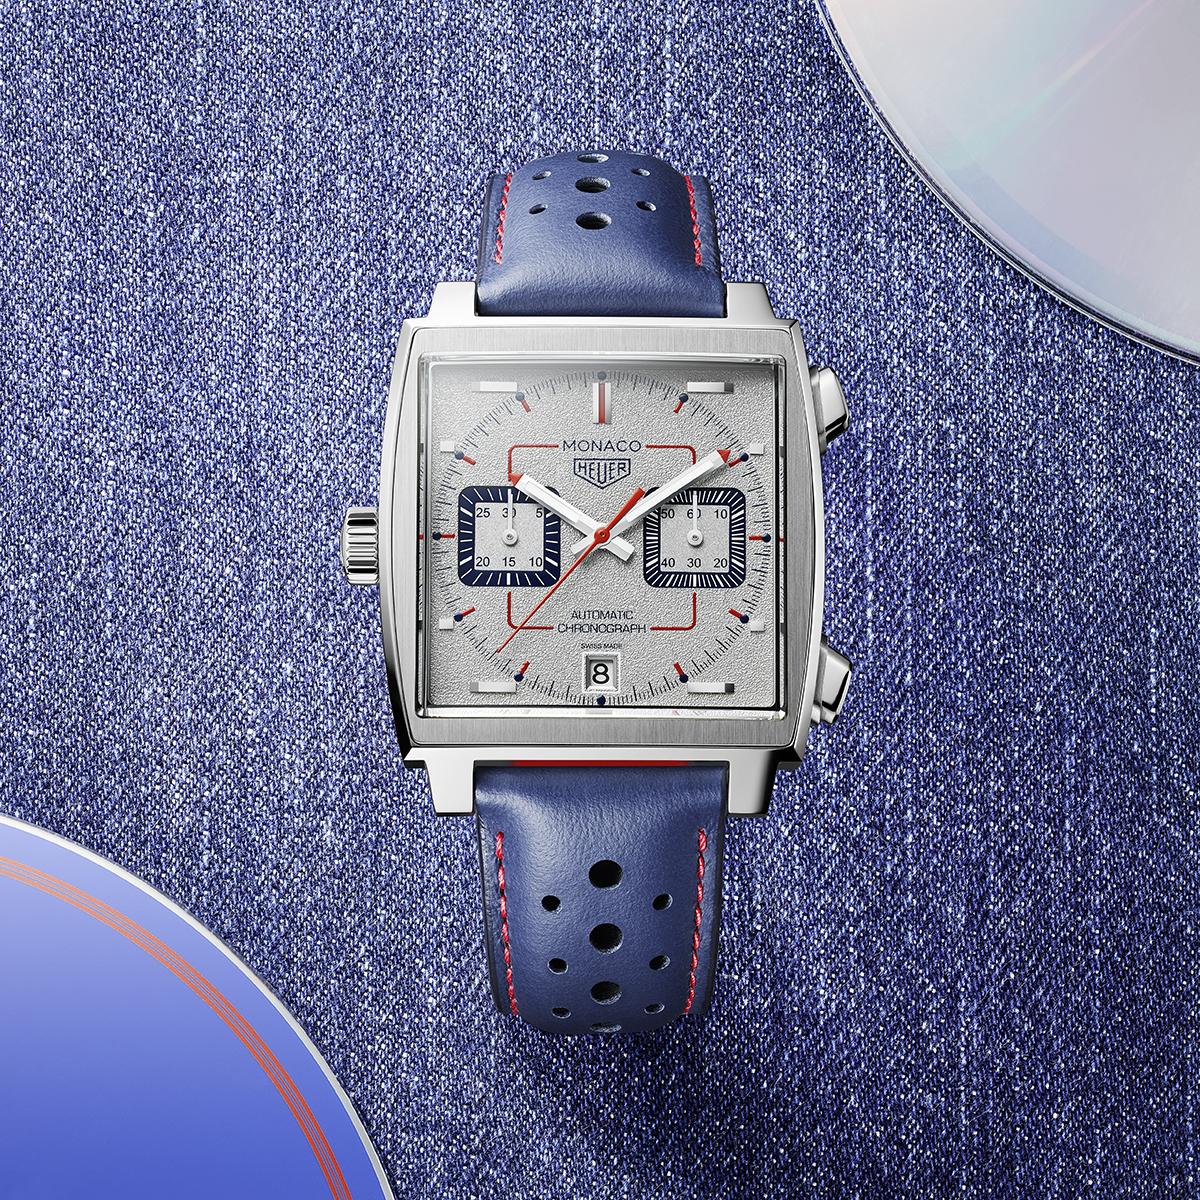 Luxurious timepiece with blue strap and square clock face